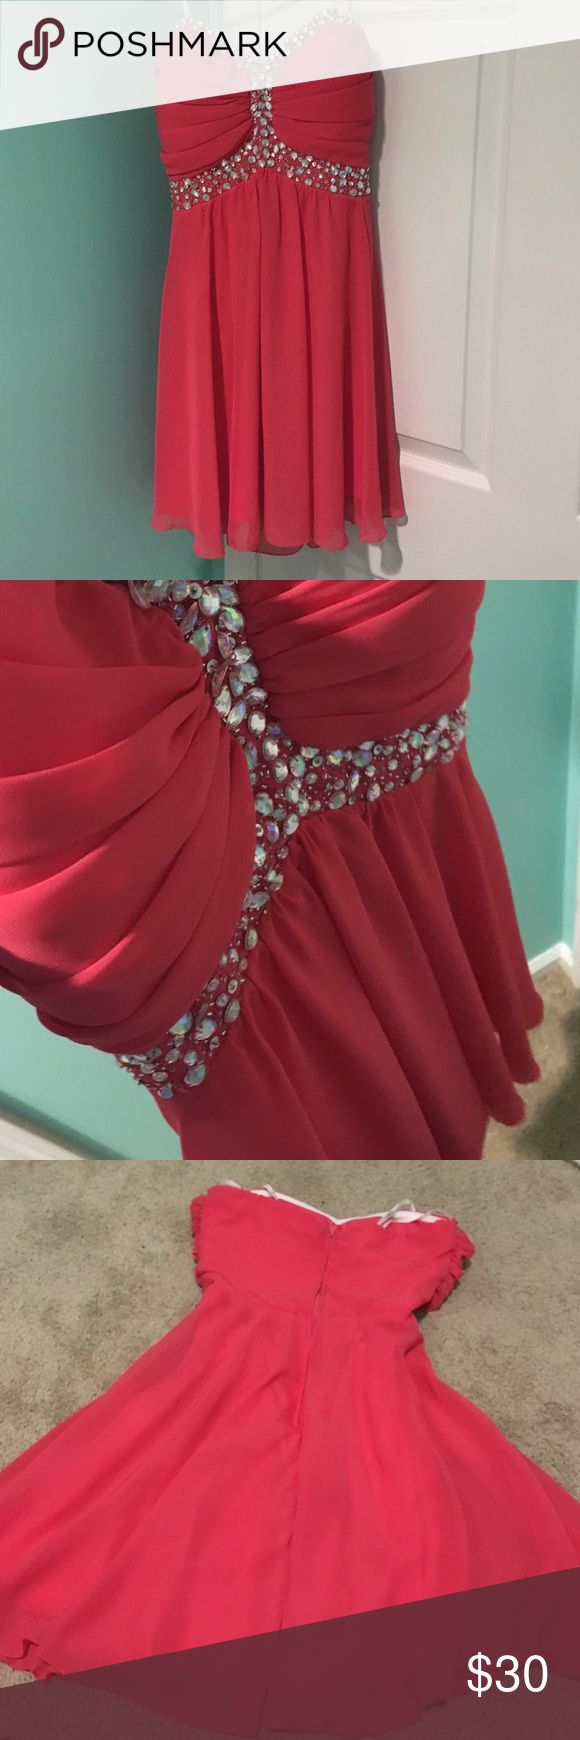 Formal Dress Coral formal dress! Worn once. Size 3/4. Jeweled B. Darlin Dresses Strapless